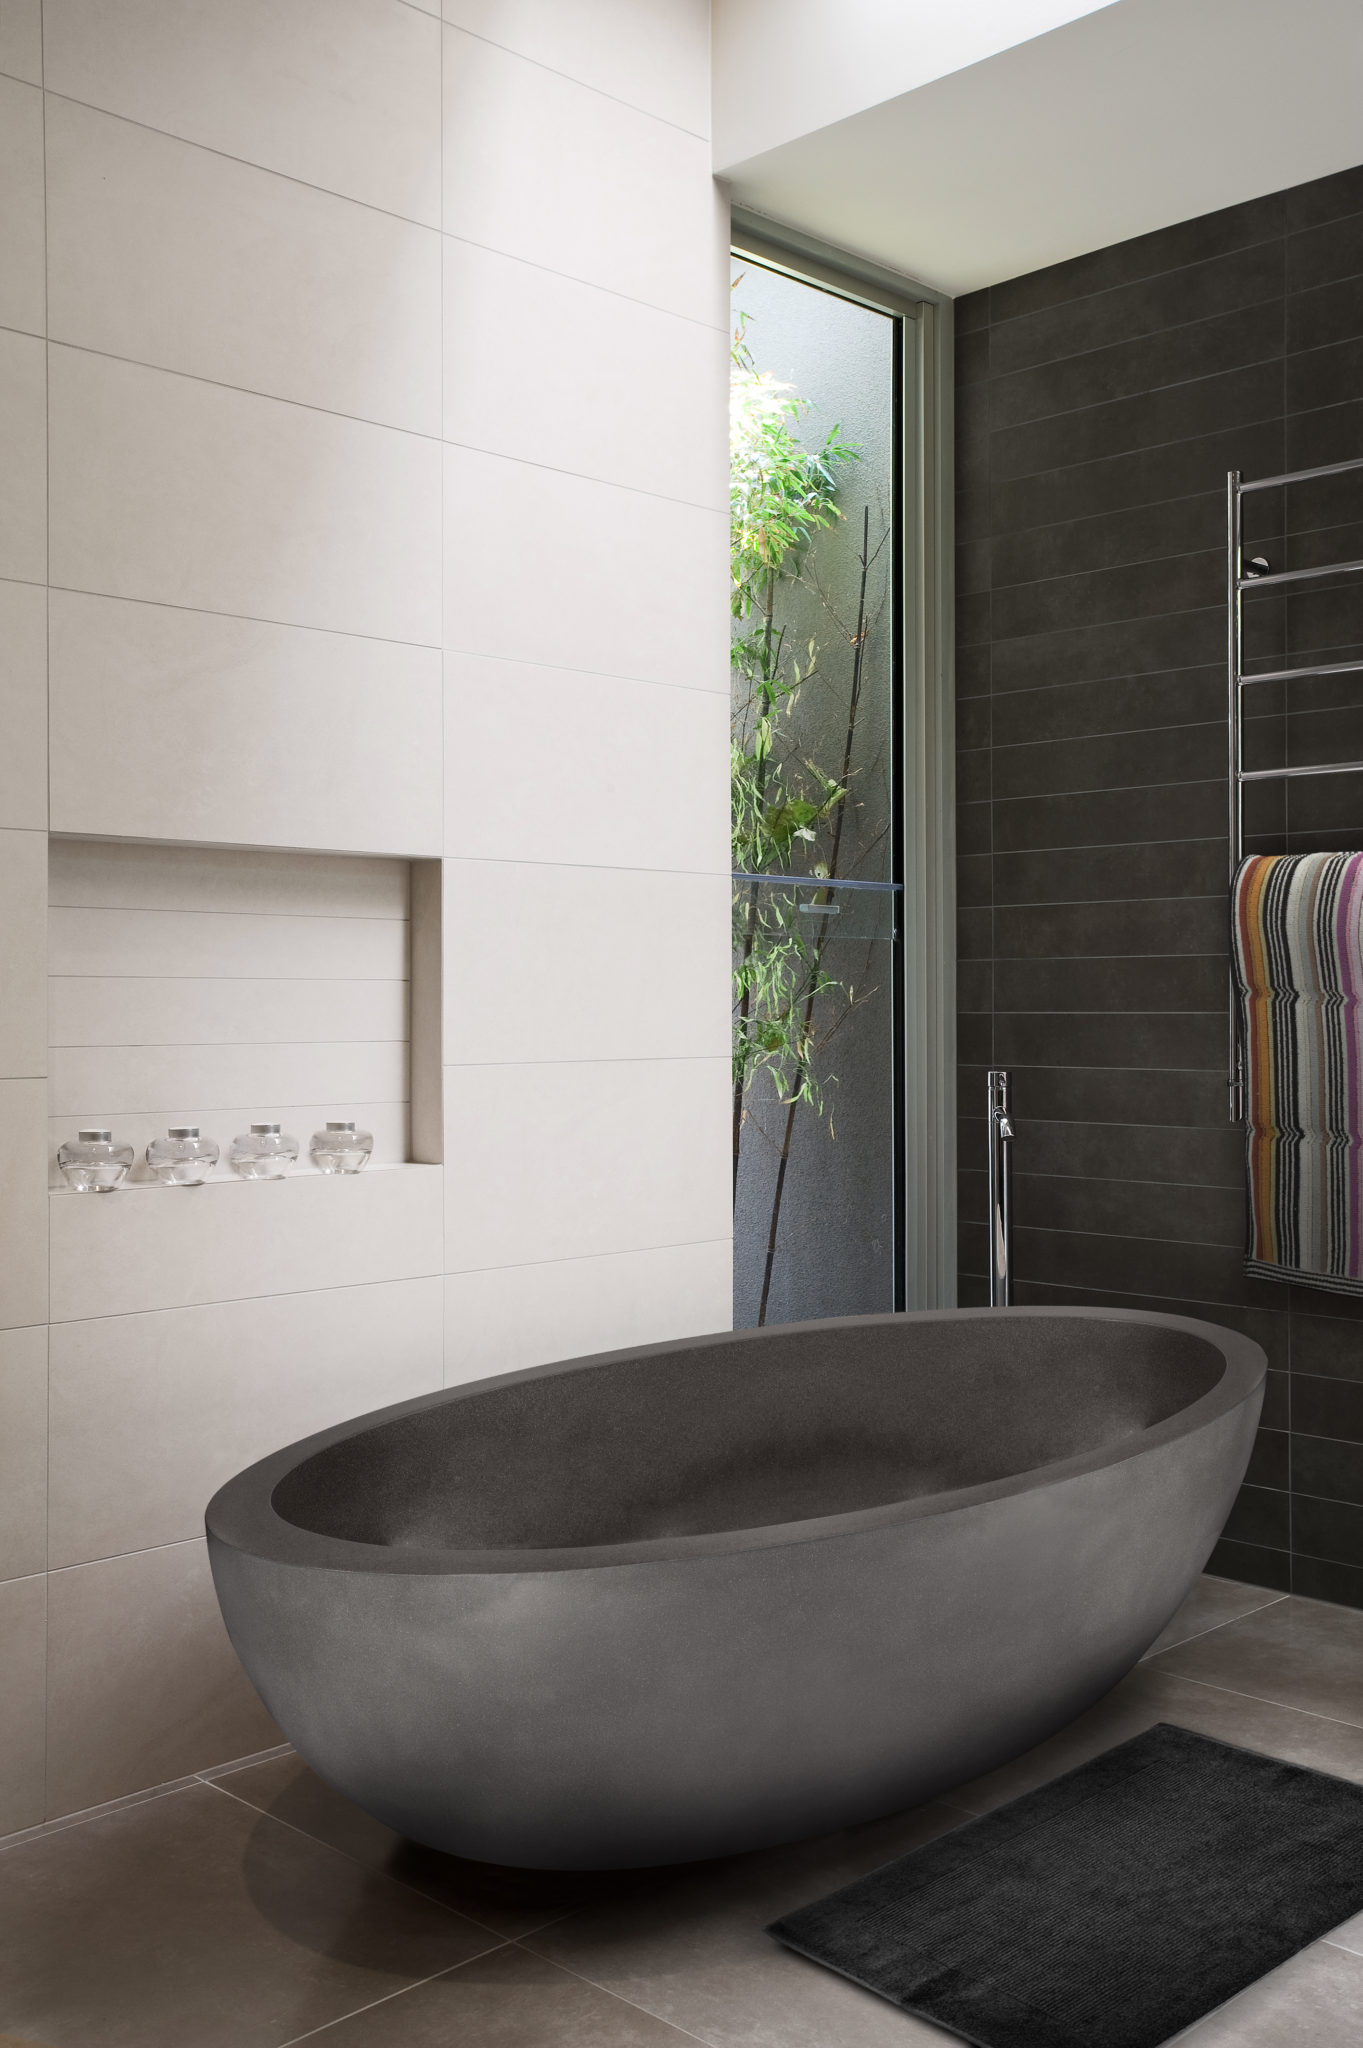 Bathroom Trends 2014 bathroom trends for 2014 and beyond - the interiors addict